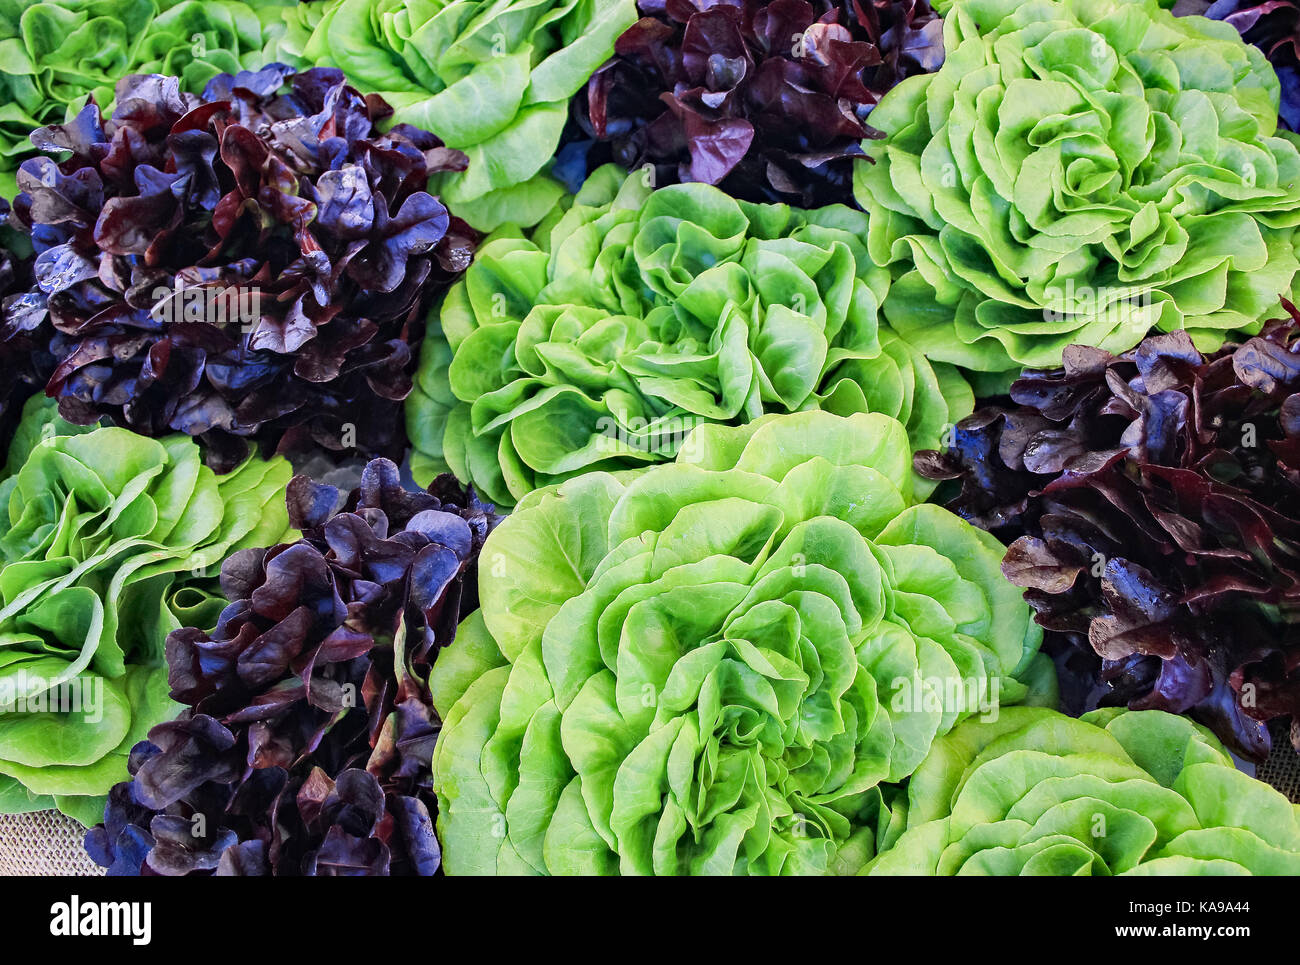 Local Farmers Market; mixed lettuce - Stock Image